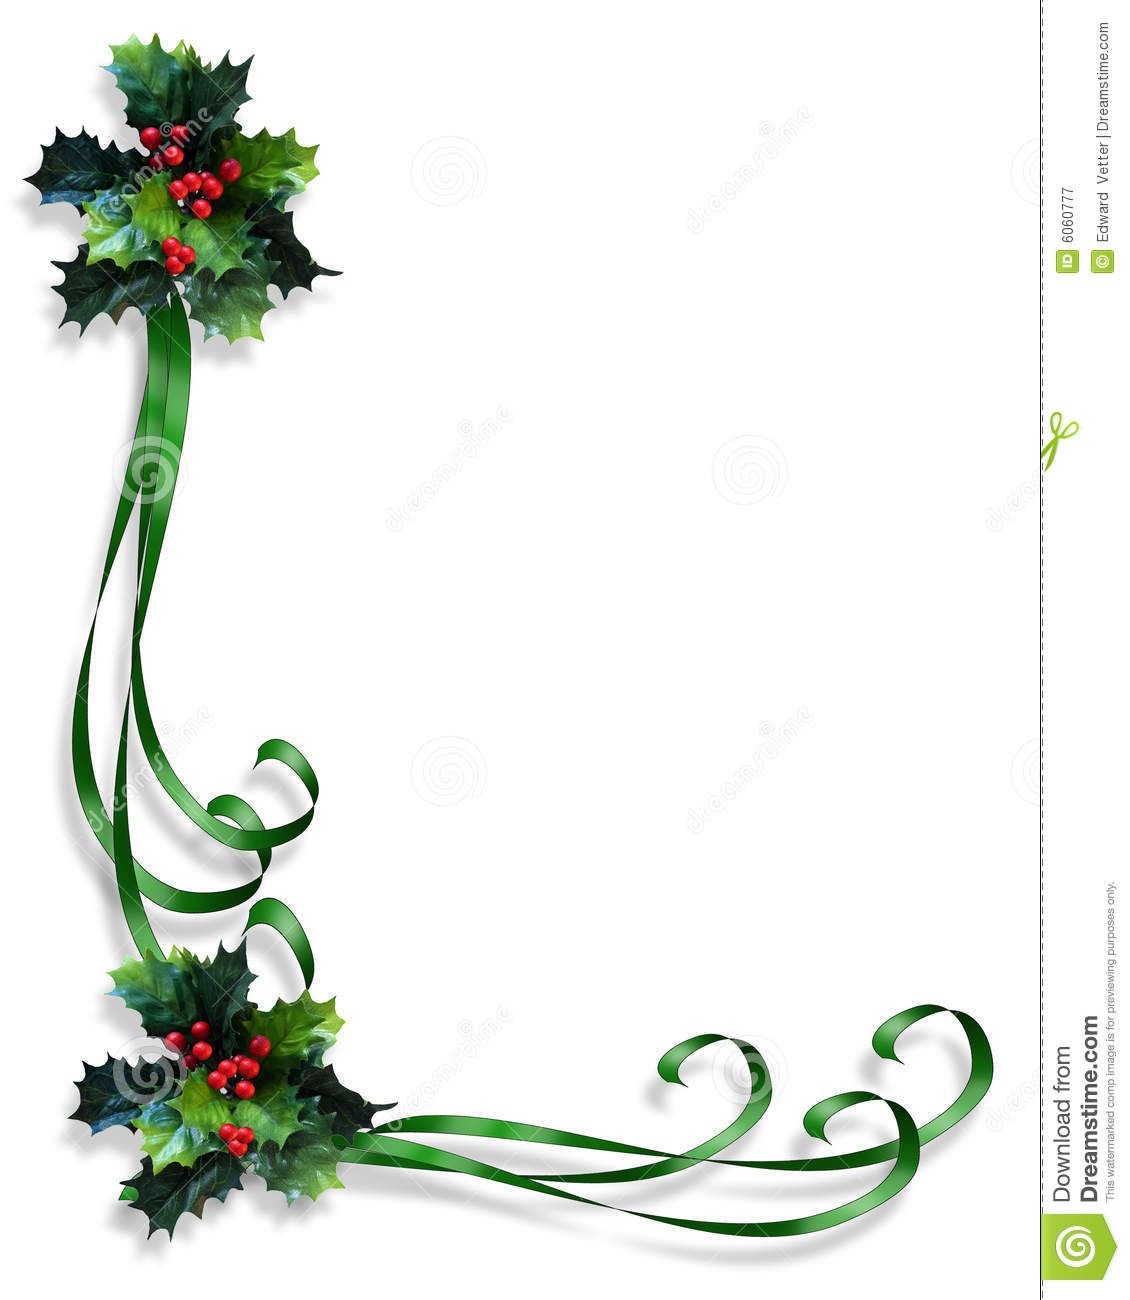 Free Ribbon Border Clip Art Christmas Border Holly And Ribbons.